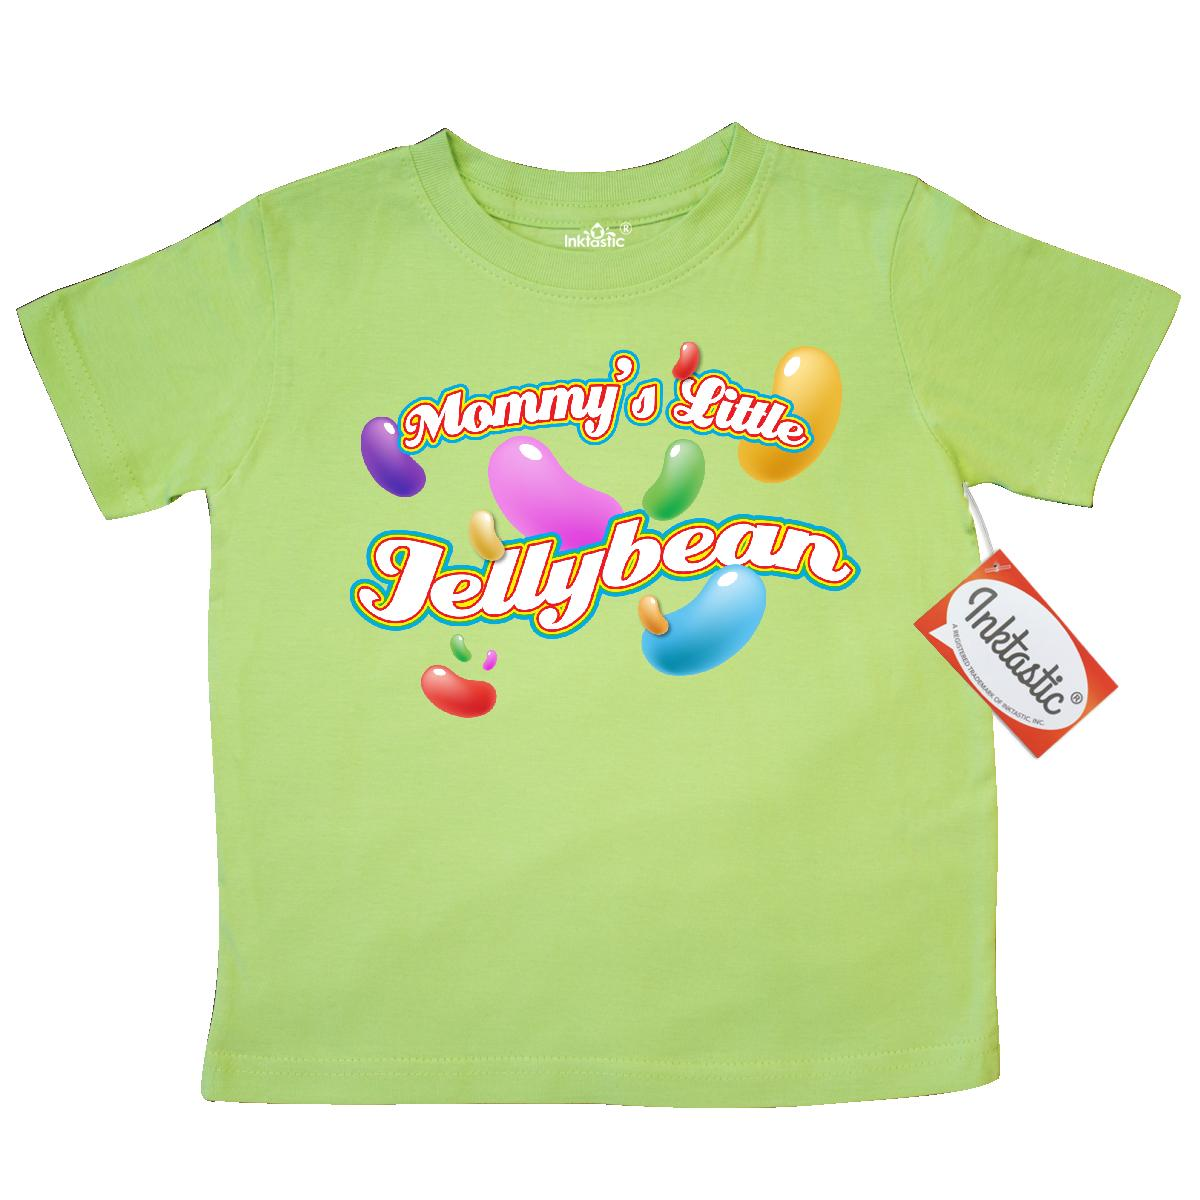 Inktastic Mommy's Jellybean Toddler T-Shirt easter jelly beans candy mommy mom tees. gift child preschooler kid clothing apparel